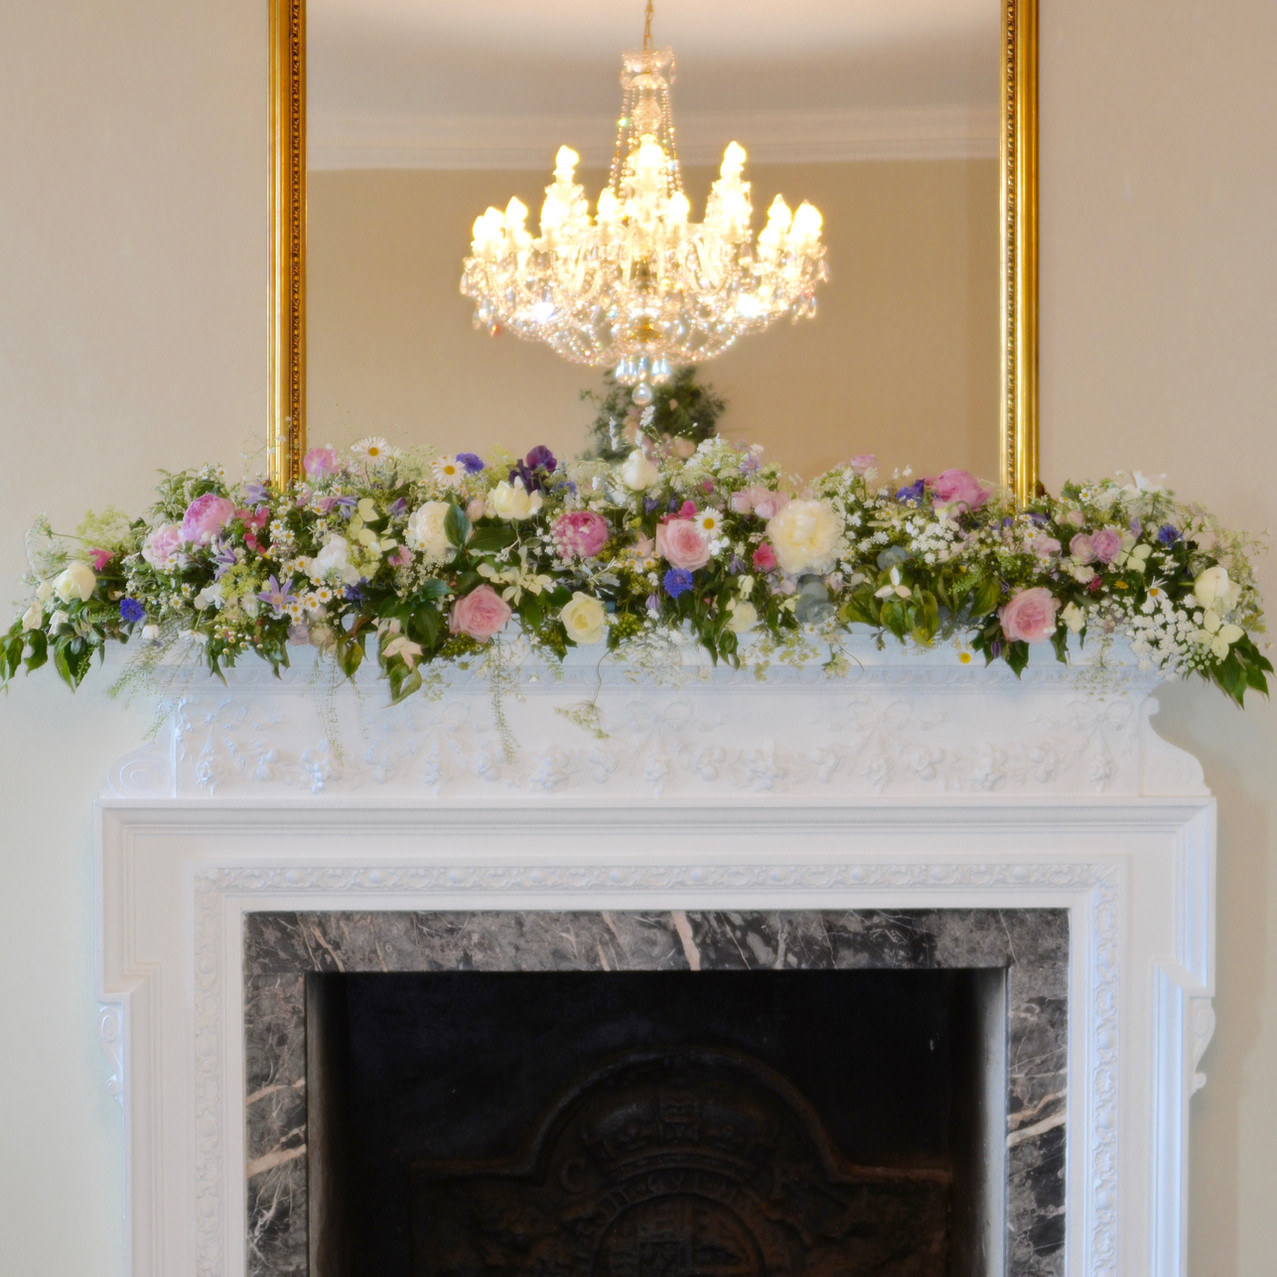 A long, slim runner arrangement of pink and cream flowers for the mantlepiece above the fireplace in the entrance hall at Kingston House